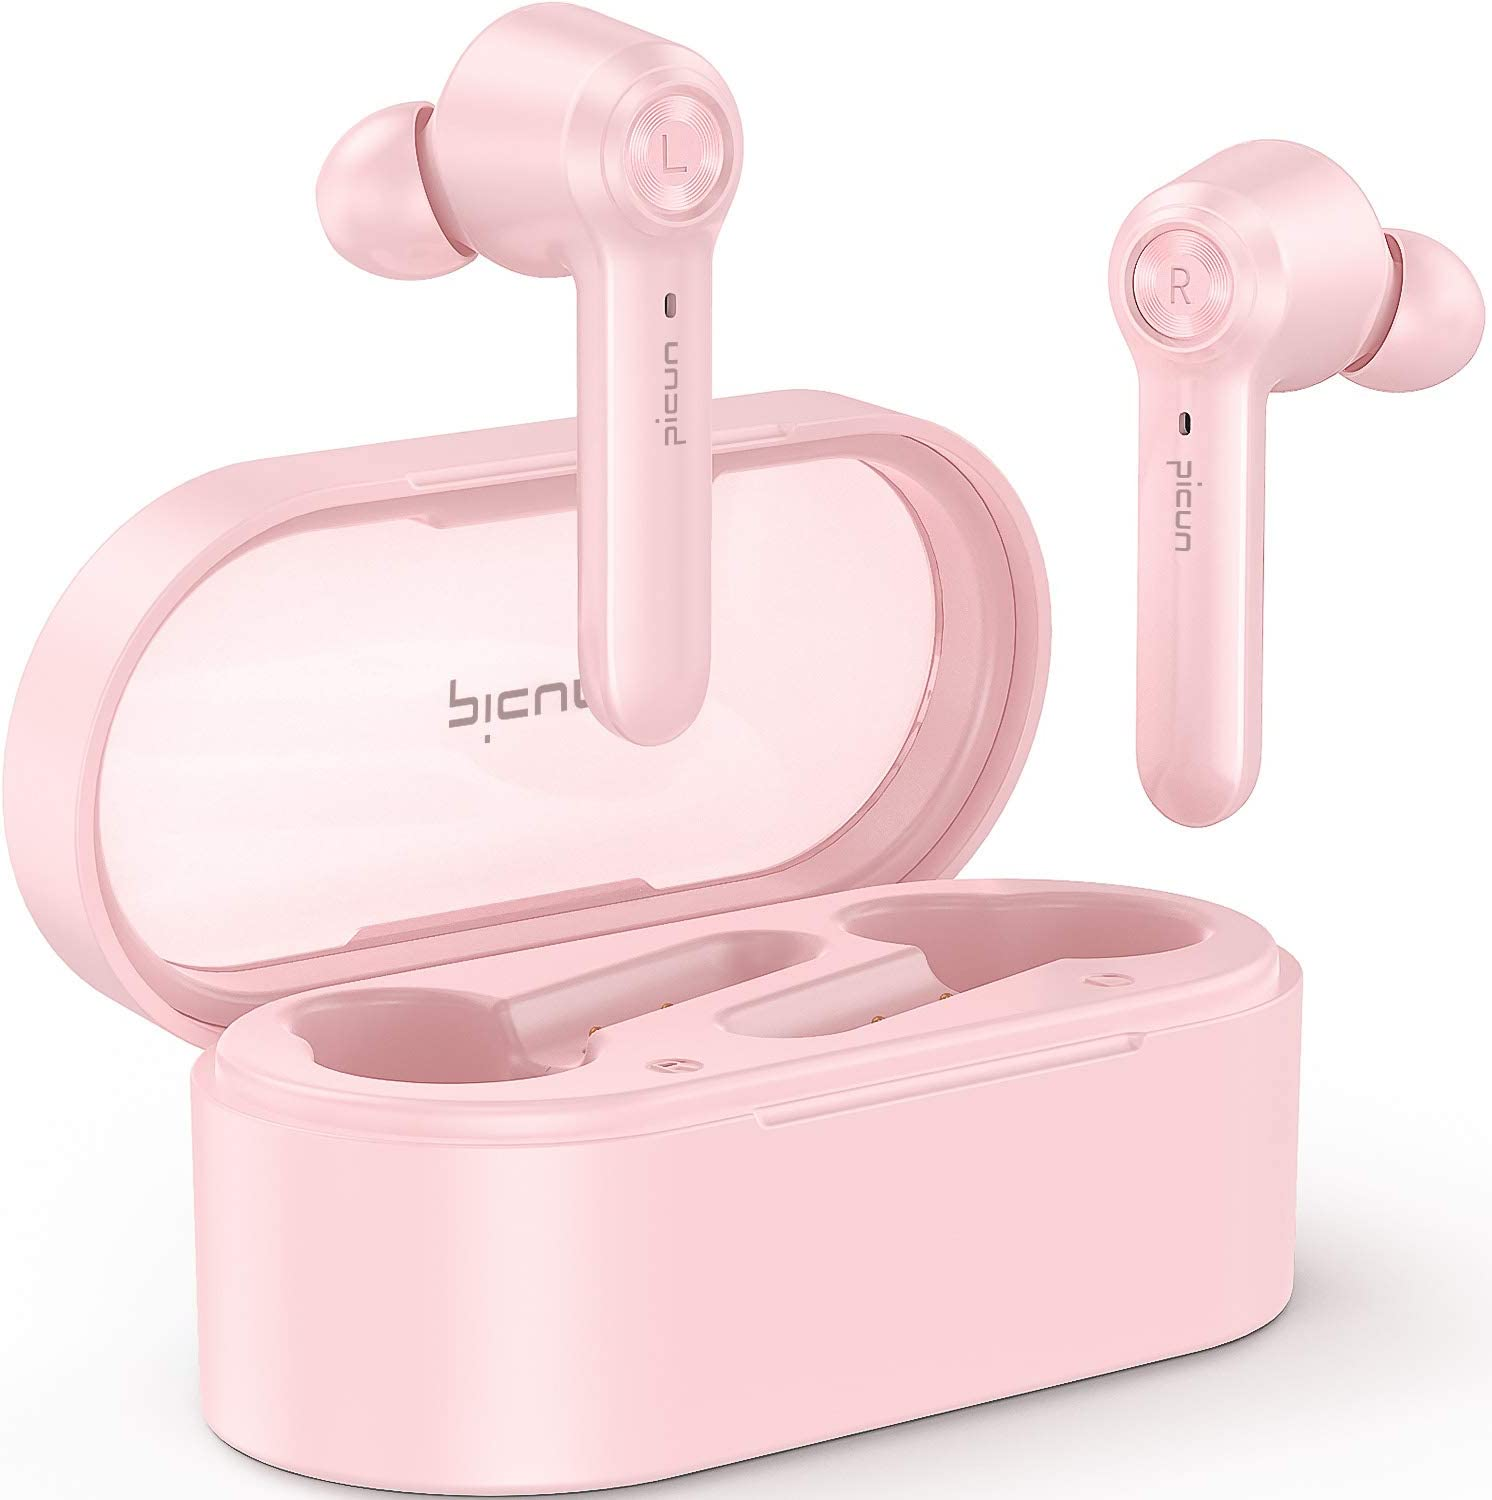 Picun W20 Pink Wireless Headphones In-Ear, Bluetooth V5.0+EDR 36 Hrs Playtime HiFi Immersive Bass IPX8 Waterproof Earbuds w/Mic, Hall Switch, Touch Control, Single/Twin Mode, USB-C, Fit for Women Girl